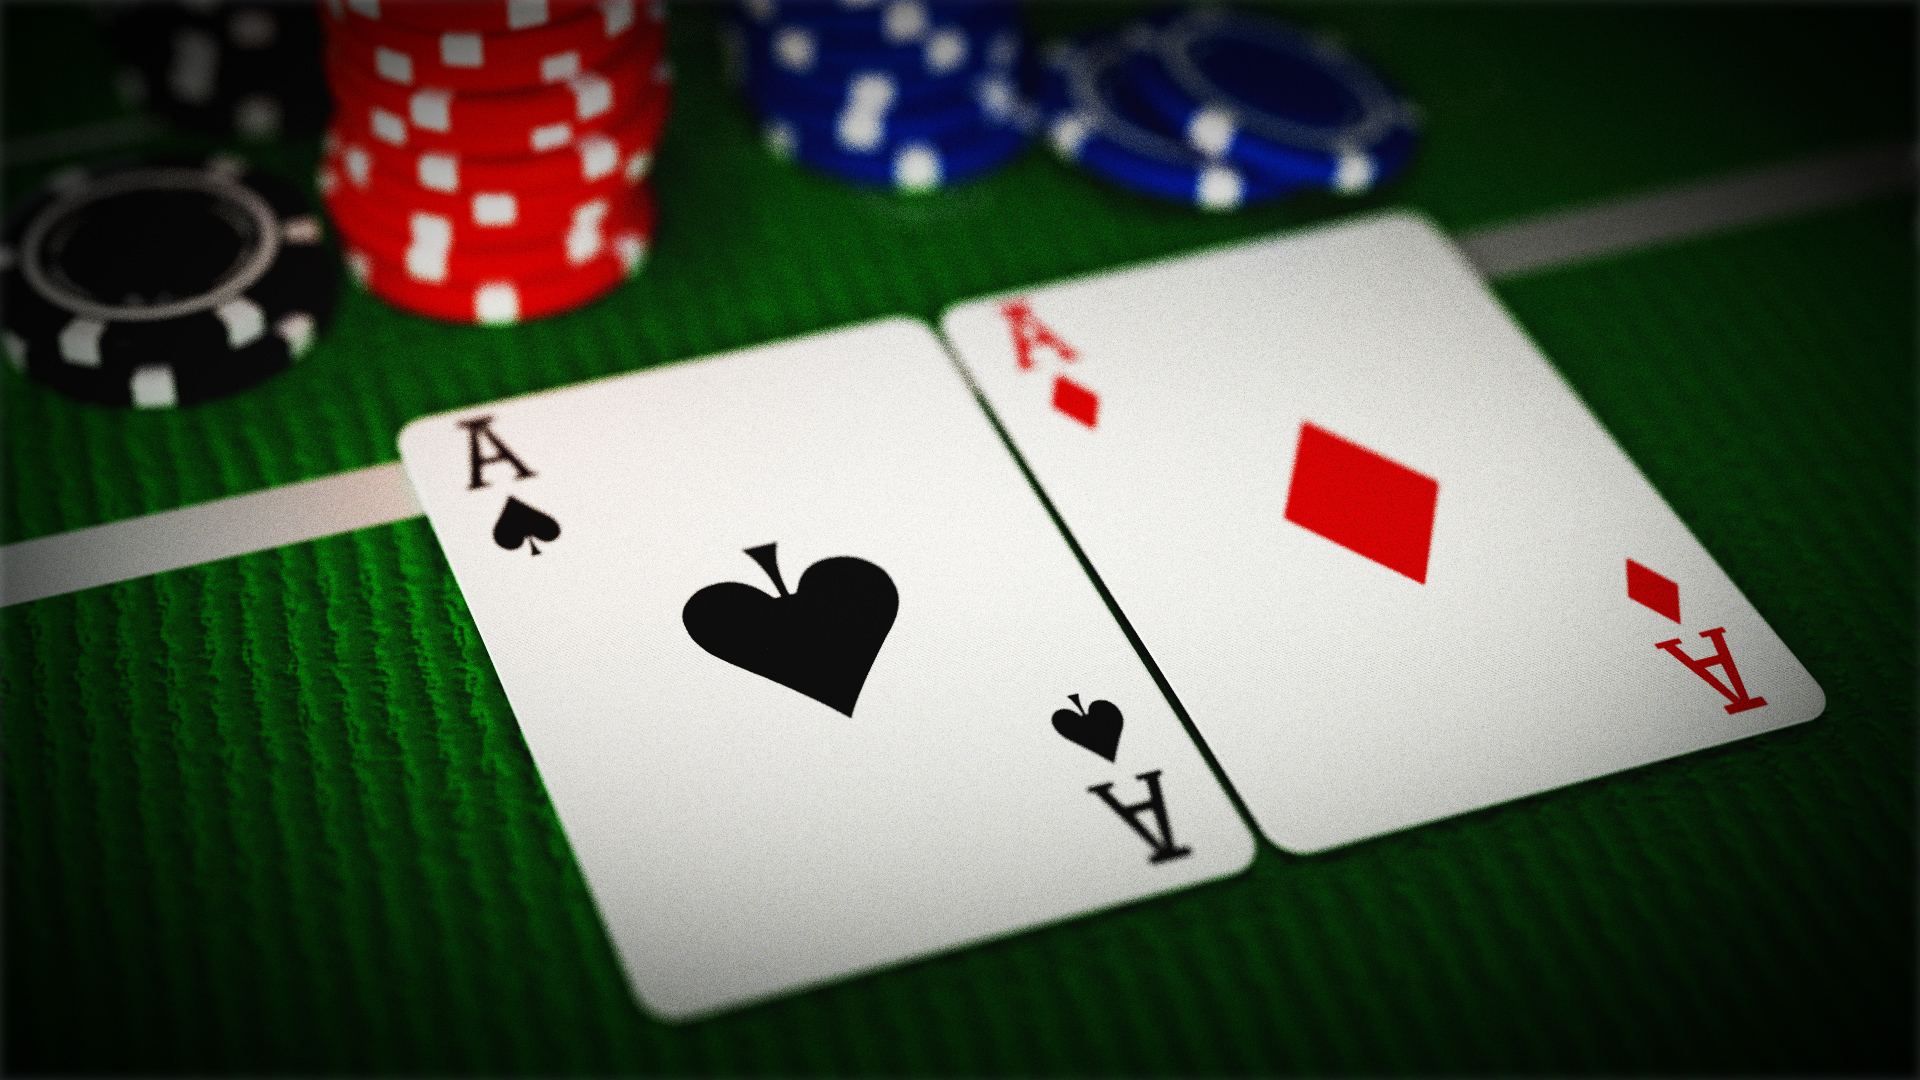 black, casino promo, casino royale, game, jackpot, money, playing cards, poker, poker chips, roulette, slots, texas, titles, vegas, victory